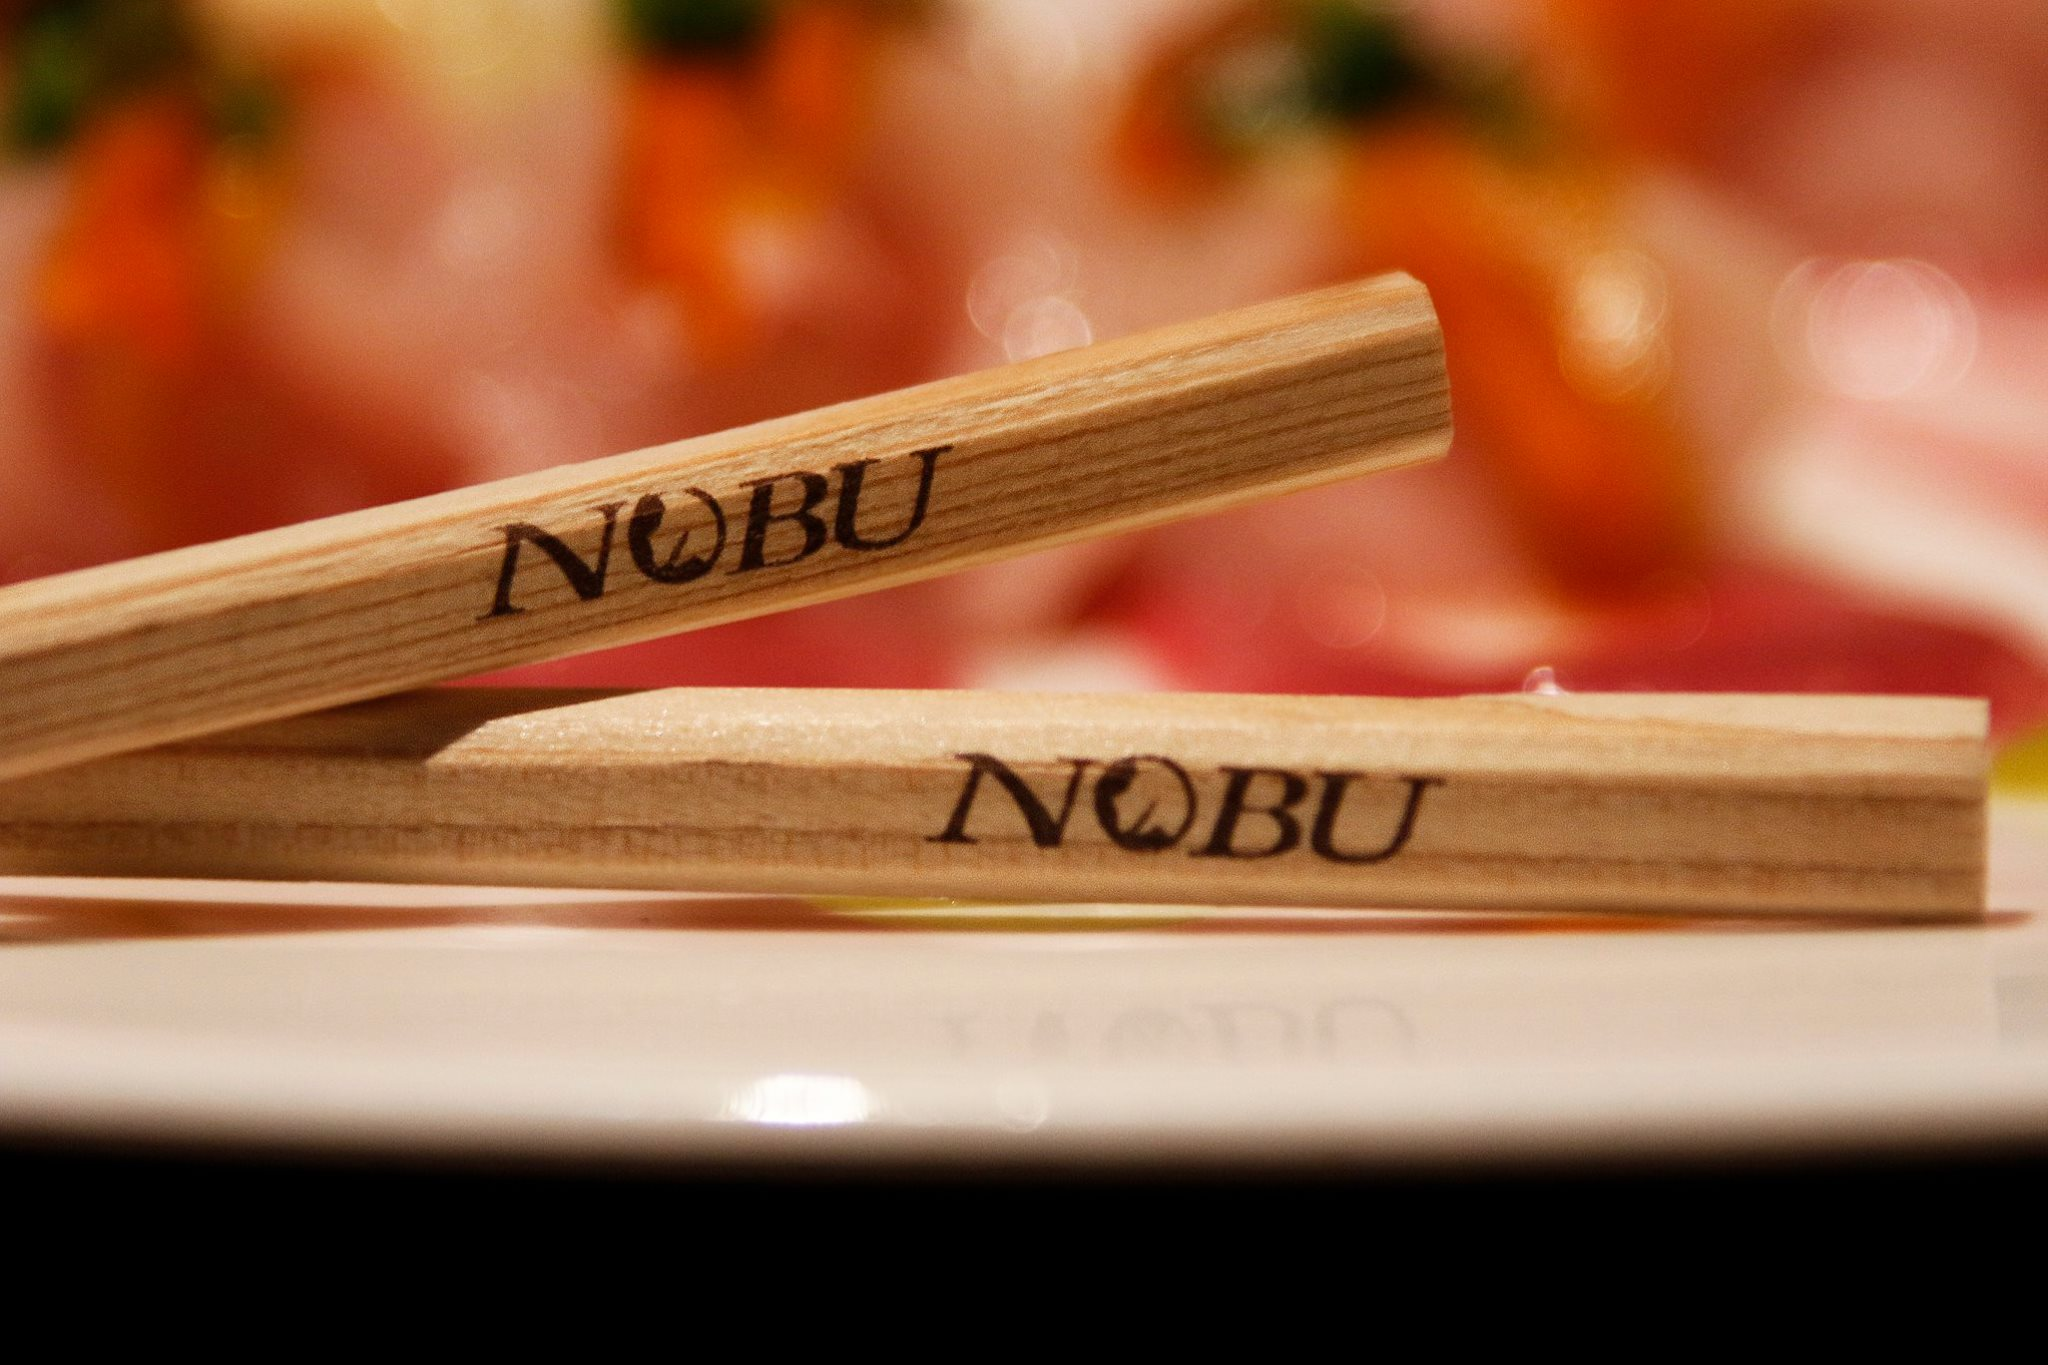 Nobu Milano Restaurant - Book restaurants online with ResDiary